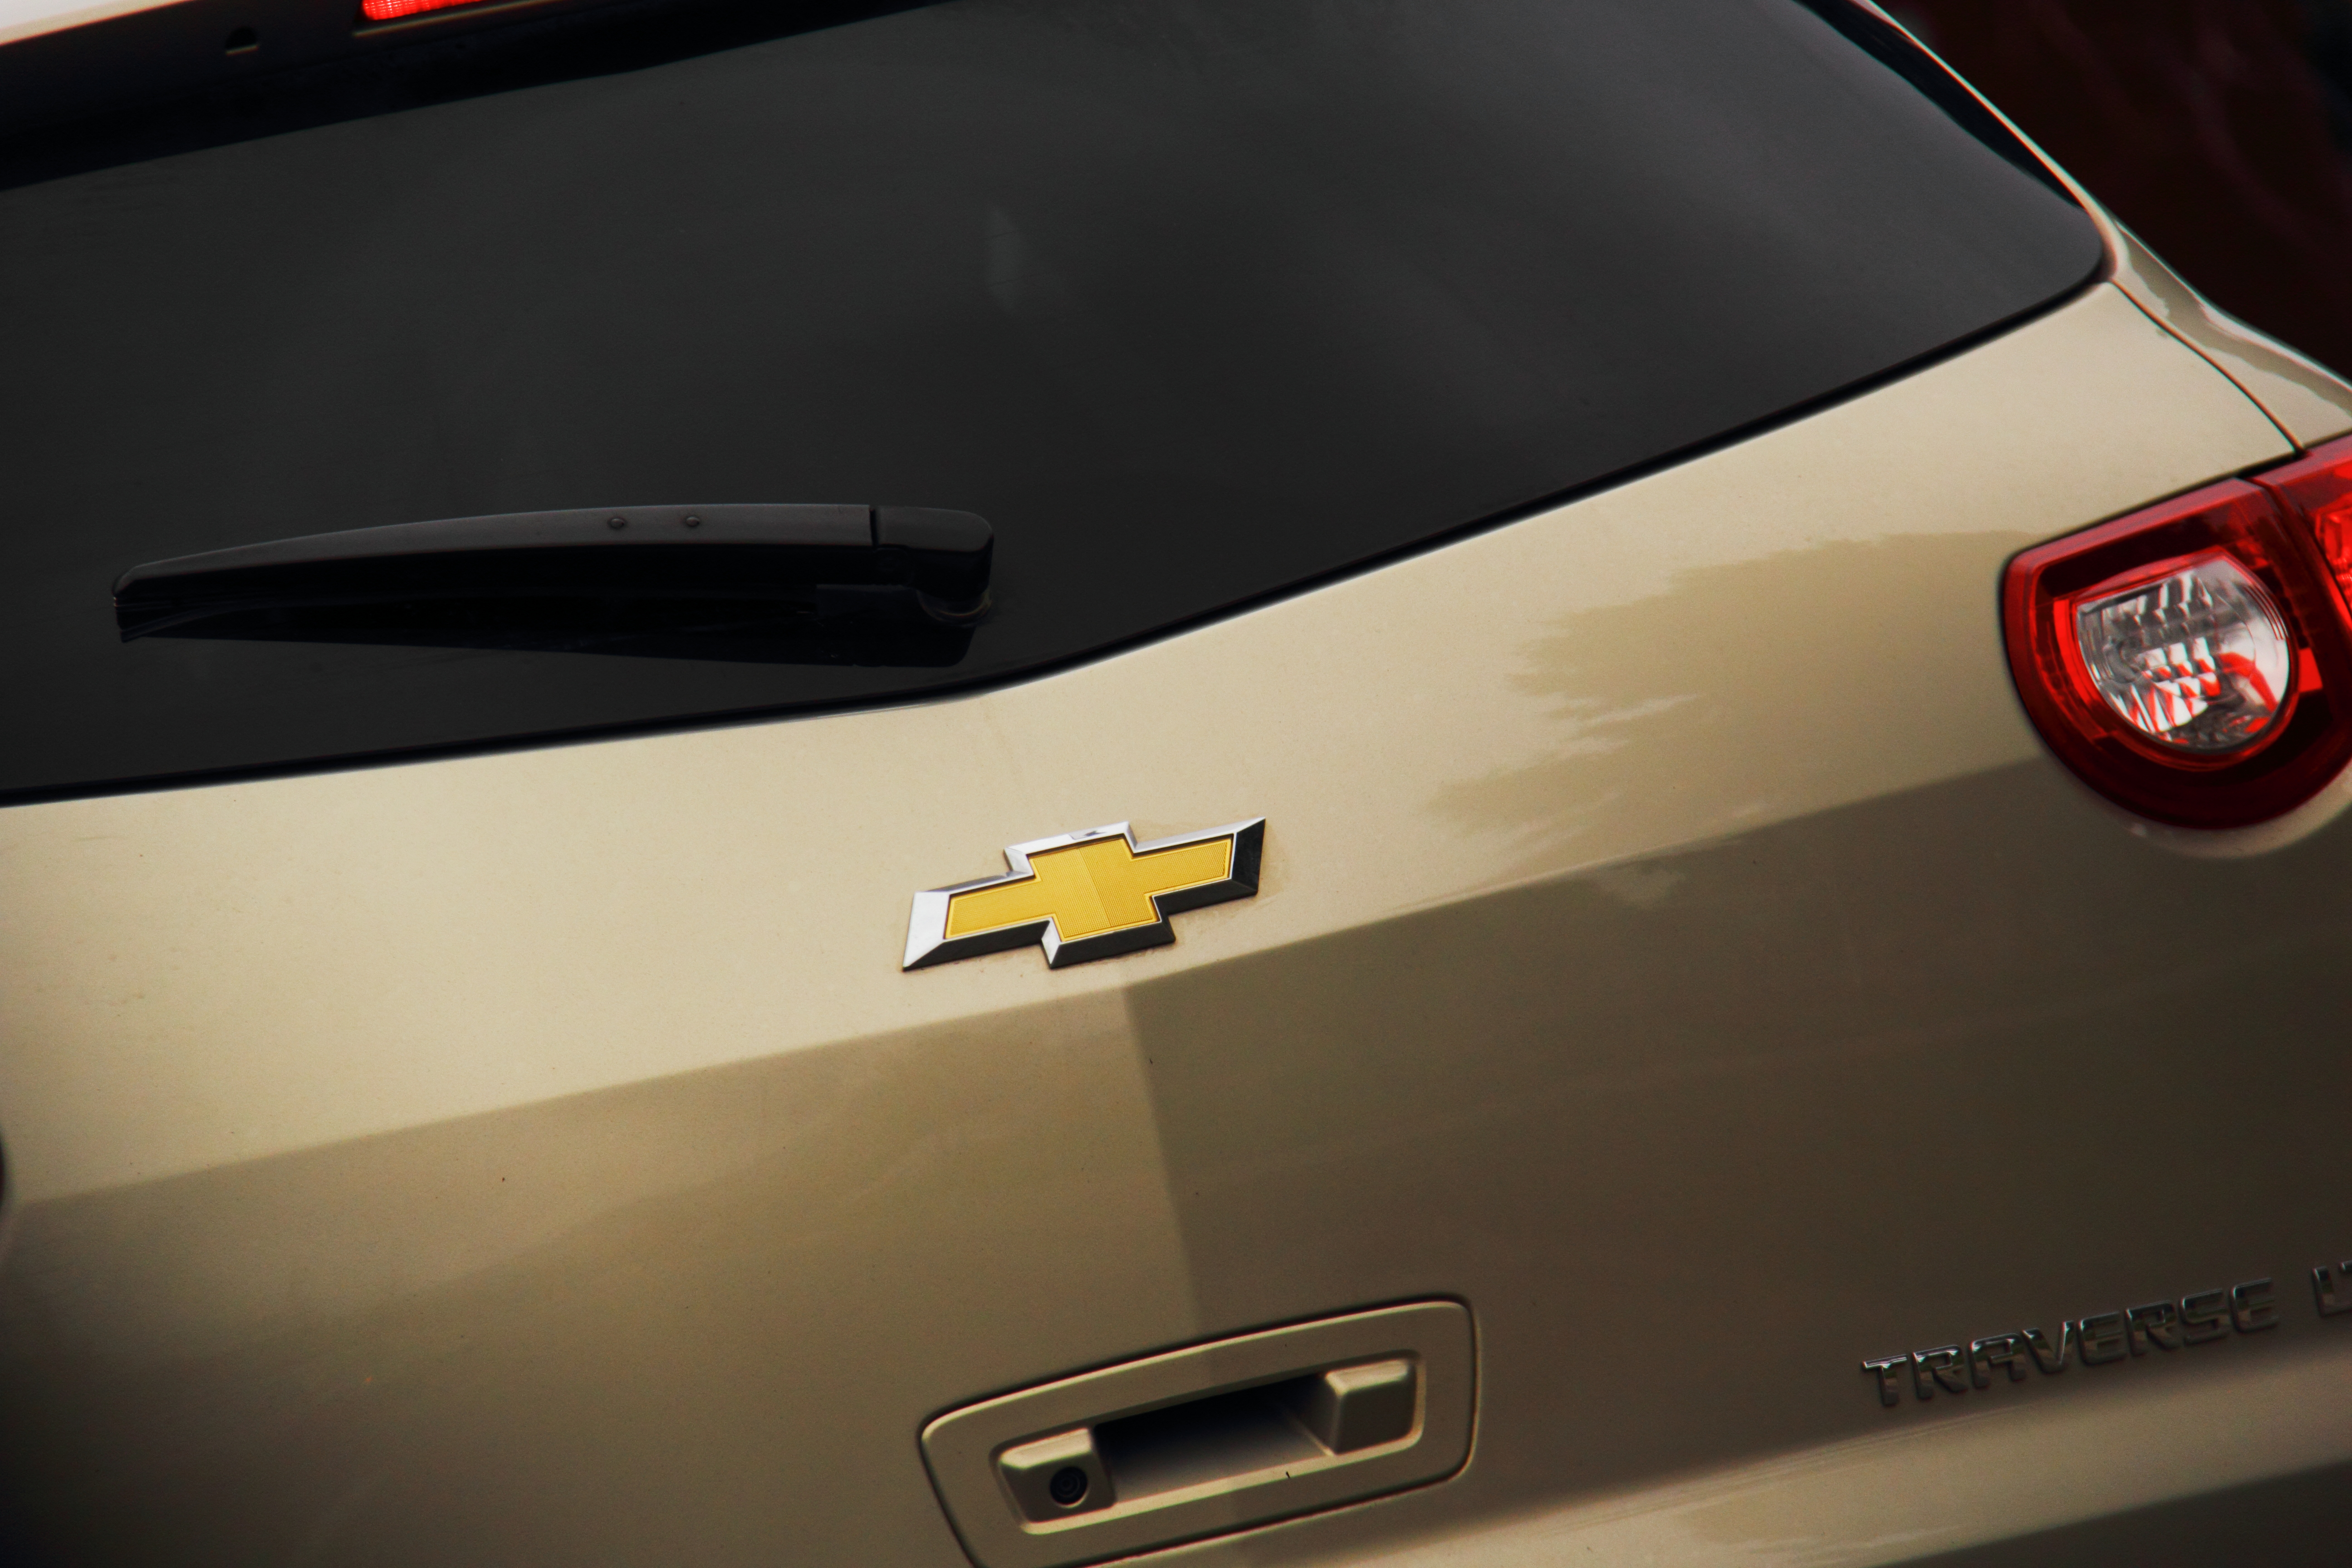 Chevy Symbol on Back of Vehicle